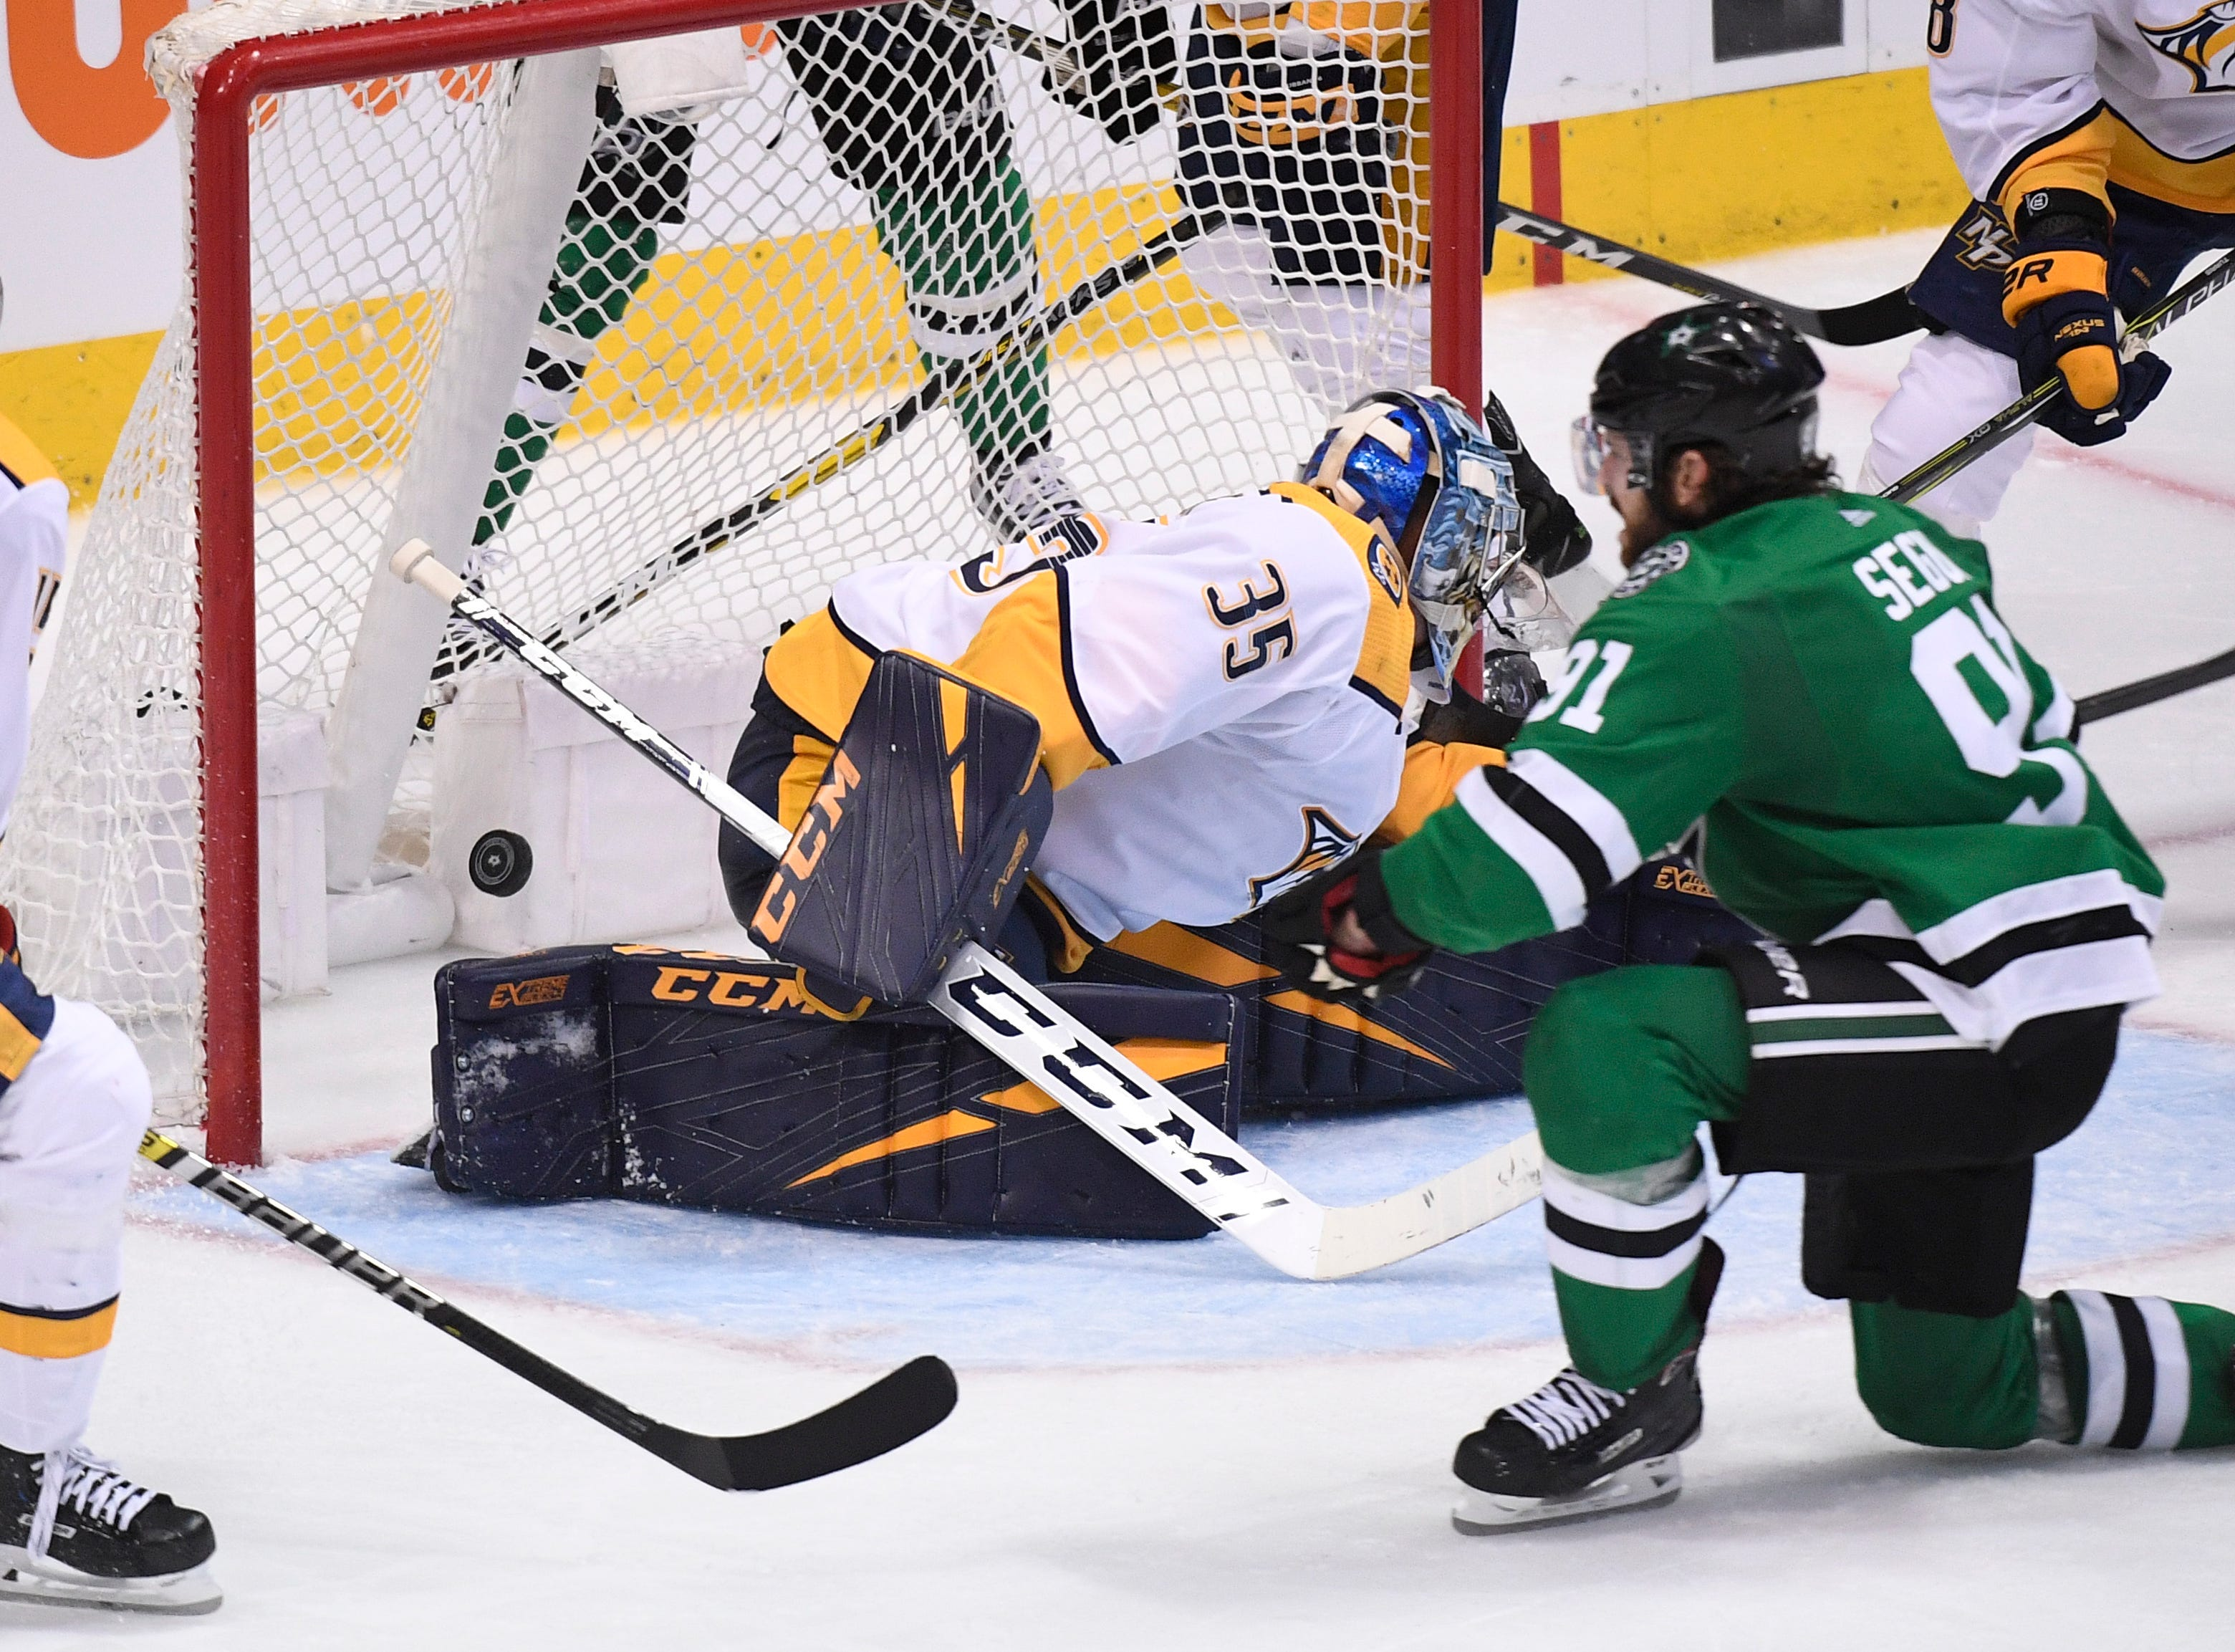 Dallas Stars center Tyler Seguin (91) watches his goal get past Nashville Predators goaltender Pekka Rinne (35) during the third period of the divisional semifinal game at the American Airlines Center in Dallas, Texas., Monday, April 15, 2019.